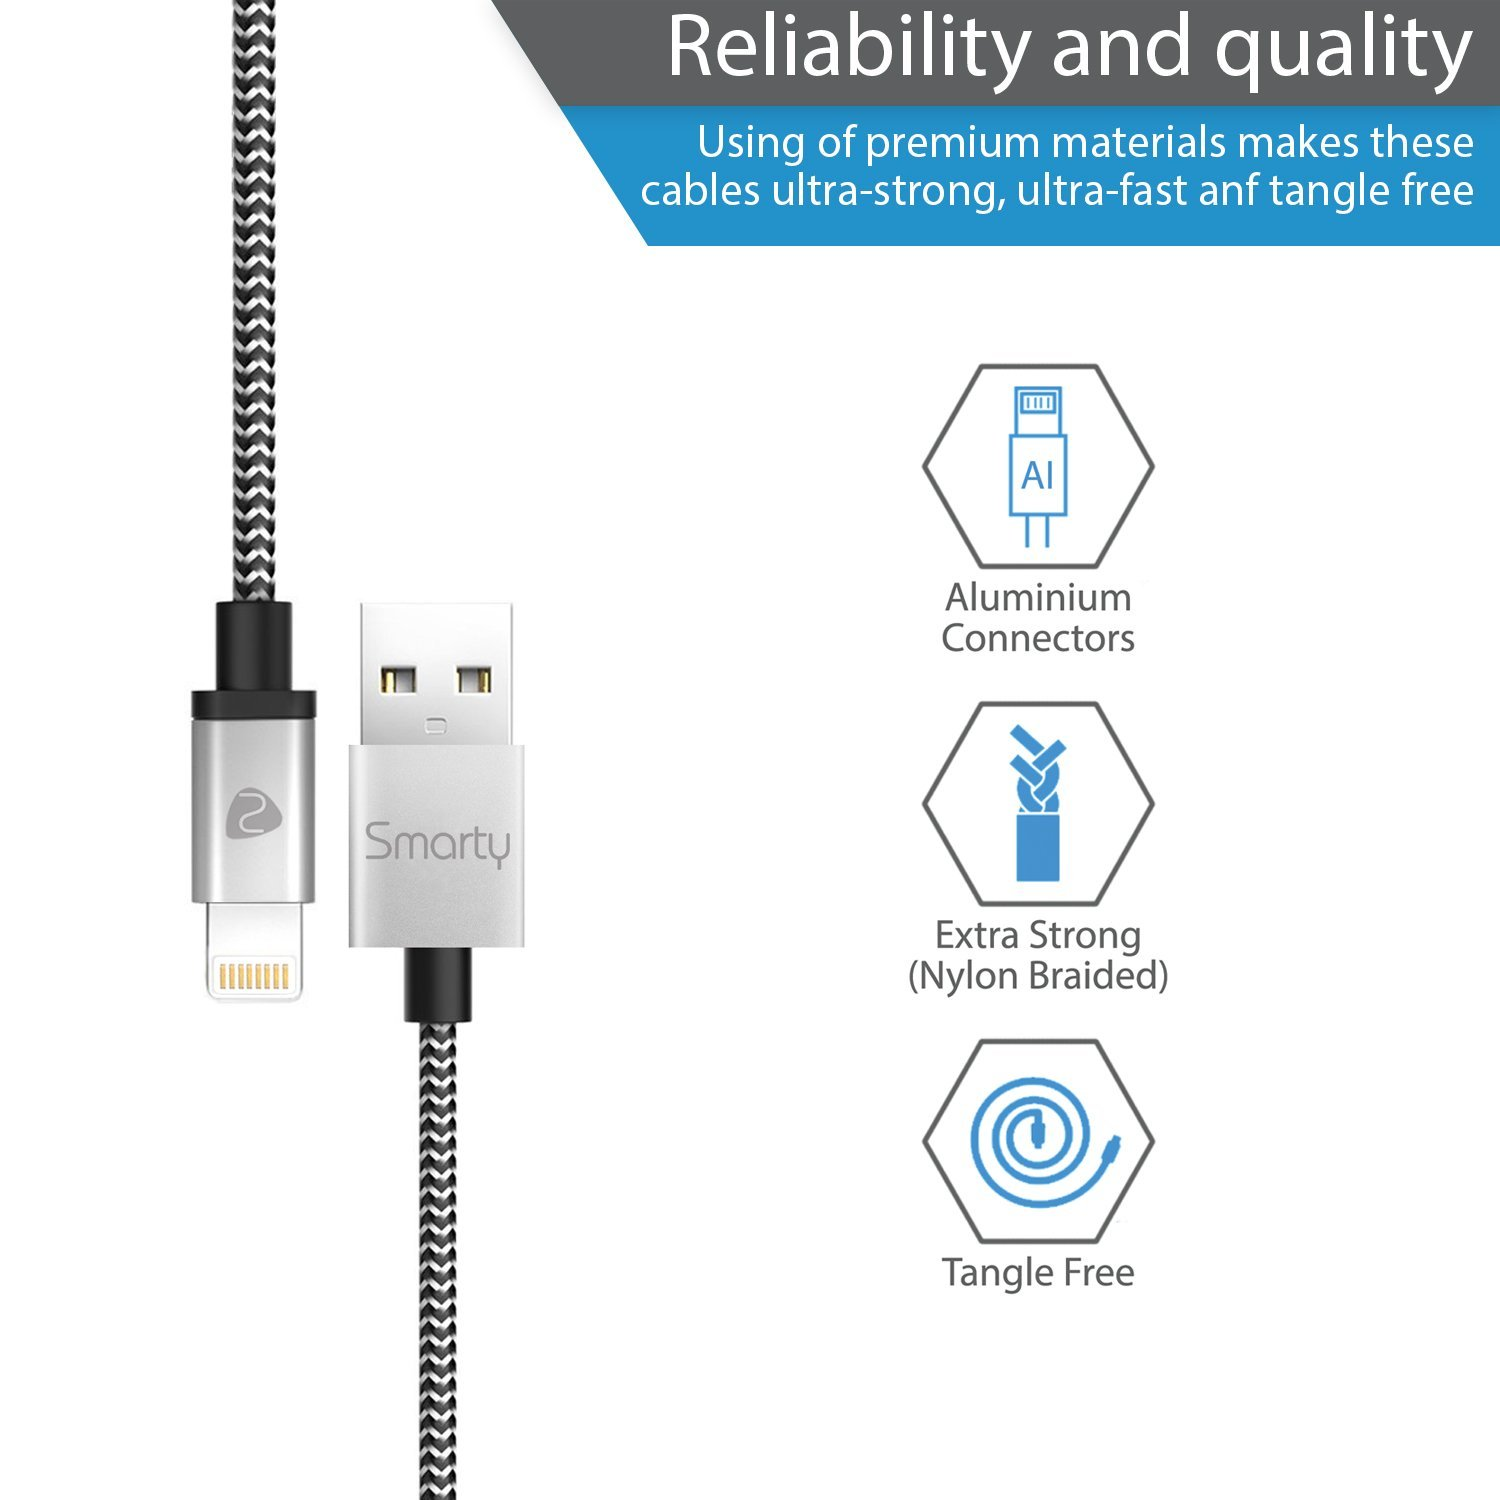 Smarty iPhone Charger MFi Certified Lightning Cable 6ft 3 Pack Nylon Braided Fast Charging & Sync Power Cord for iPhone X 8/8 plus 7/7 Plus/6/6S/6 Plus/6S Plus/5 5S 5C SE iPad 2 3 4 by Smarty (Image #2)